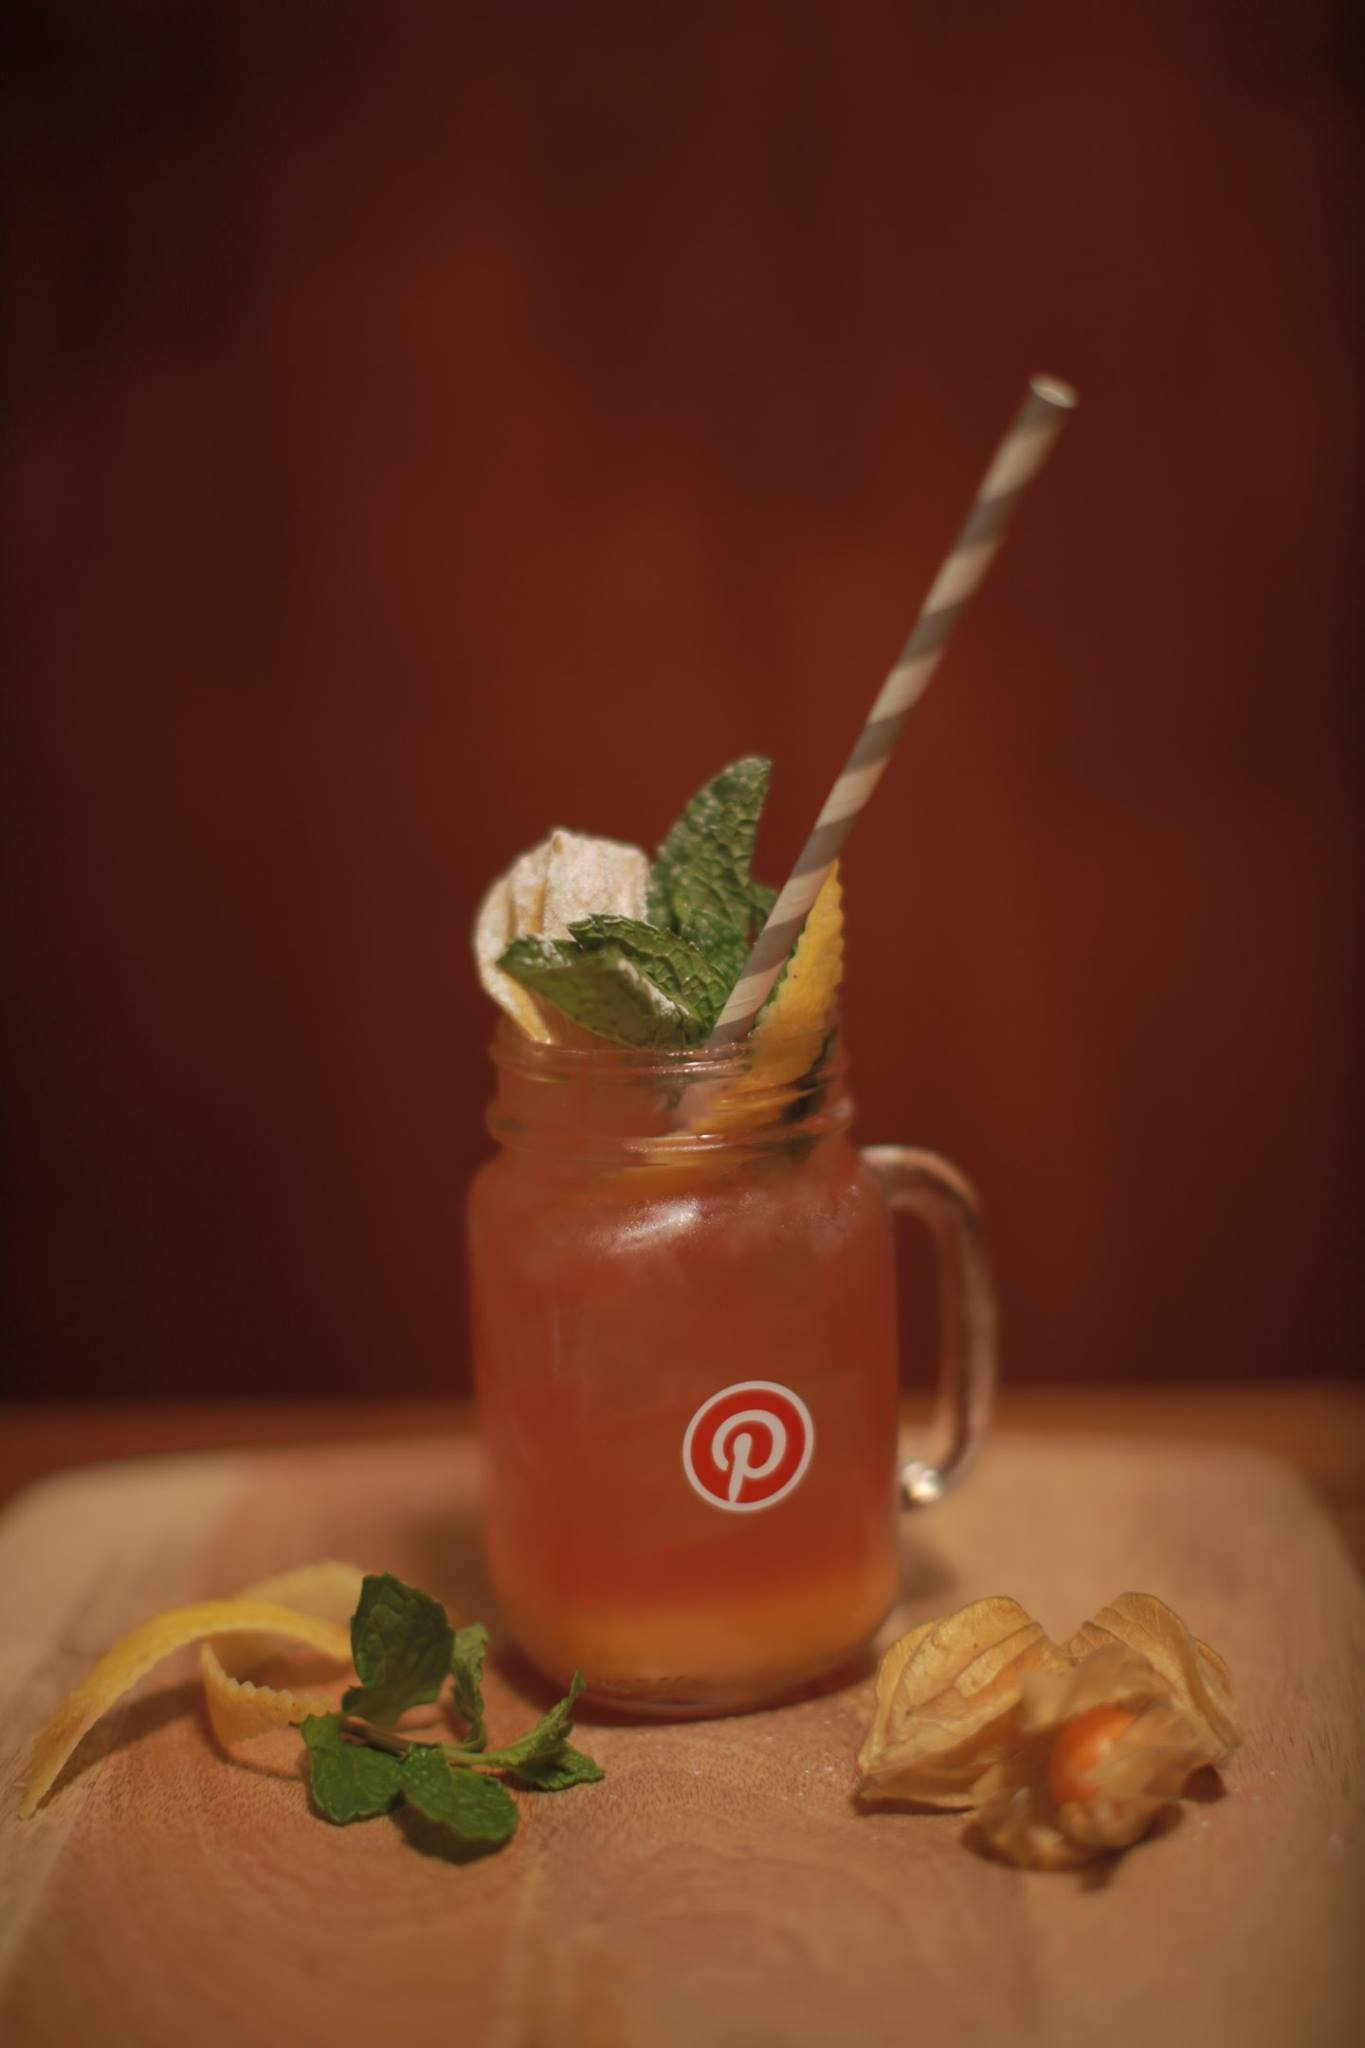 An Evening With Pinterest In London Making (AND Drinking) Cocktails! Plus Amazing Cocktail Recipes For You To Try At Home! (4)